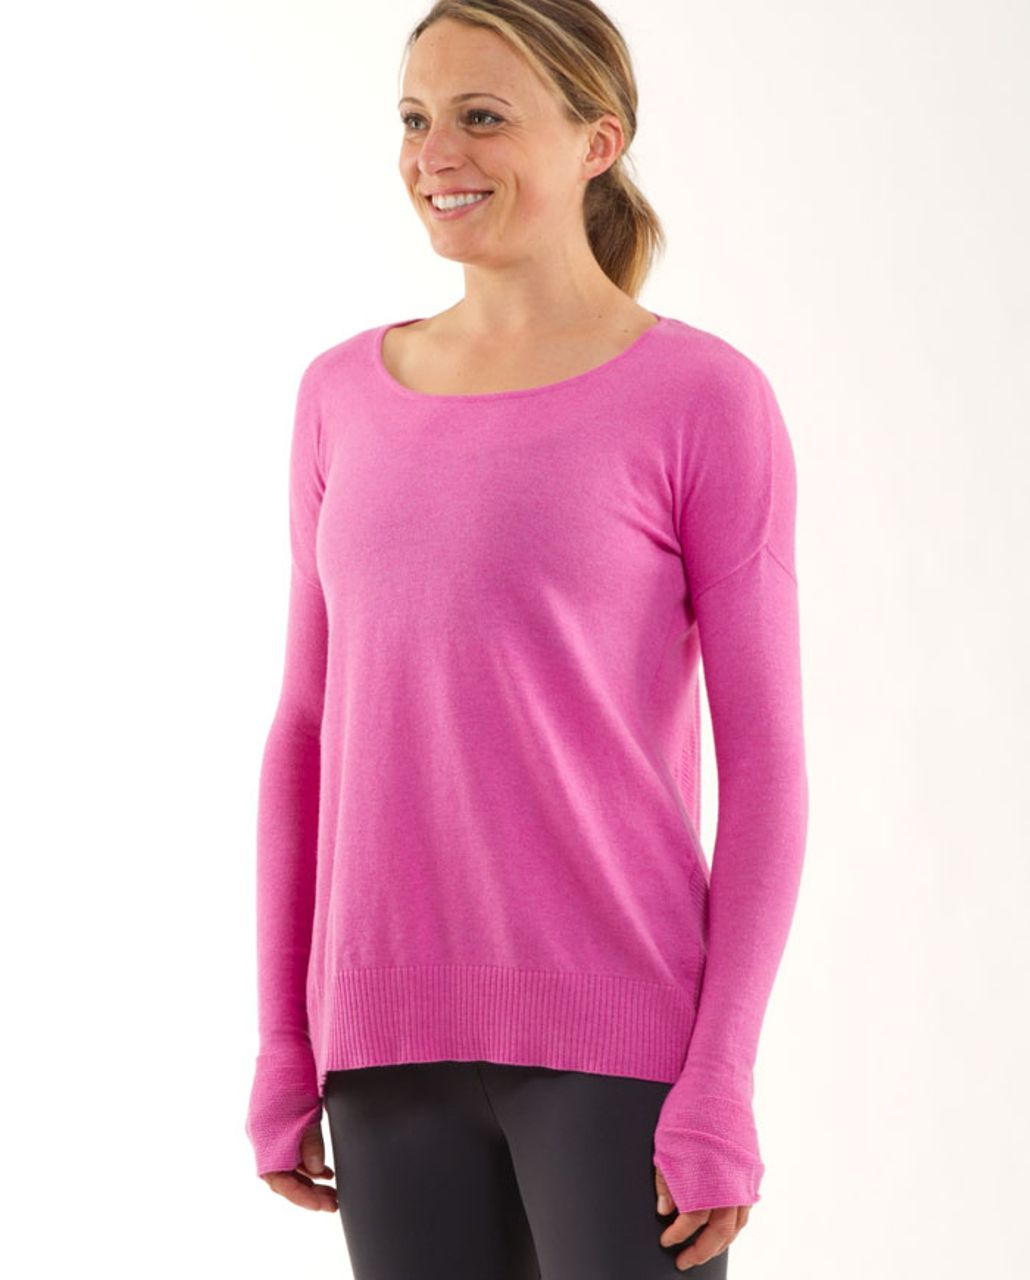 Lululemon Yoga Cozy Pullover - Heathered Smoky Rose